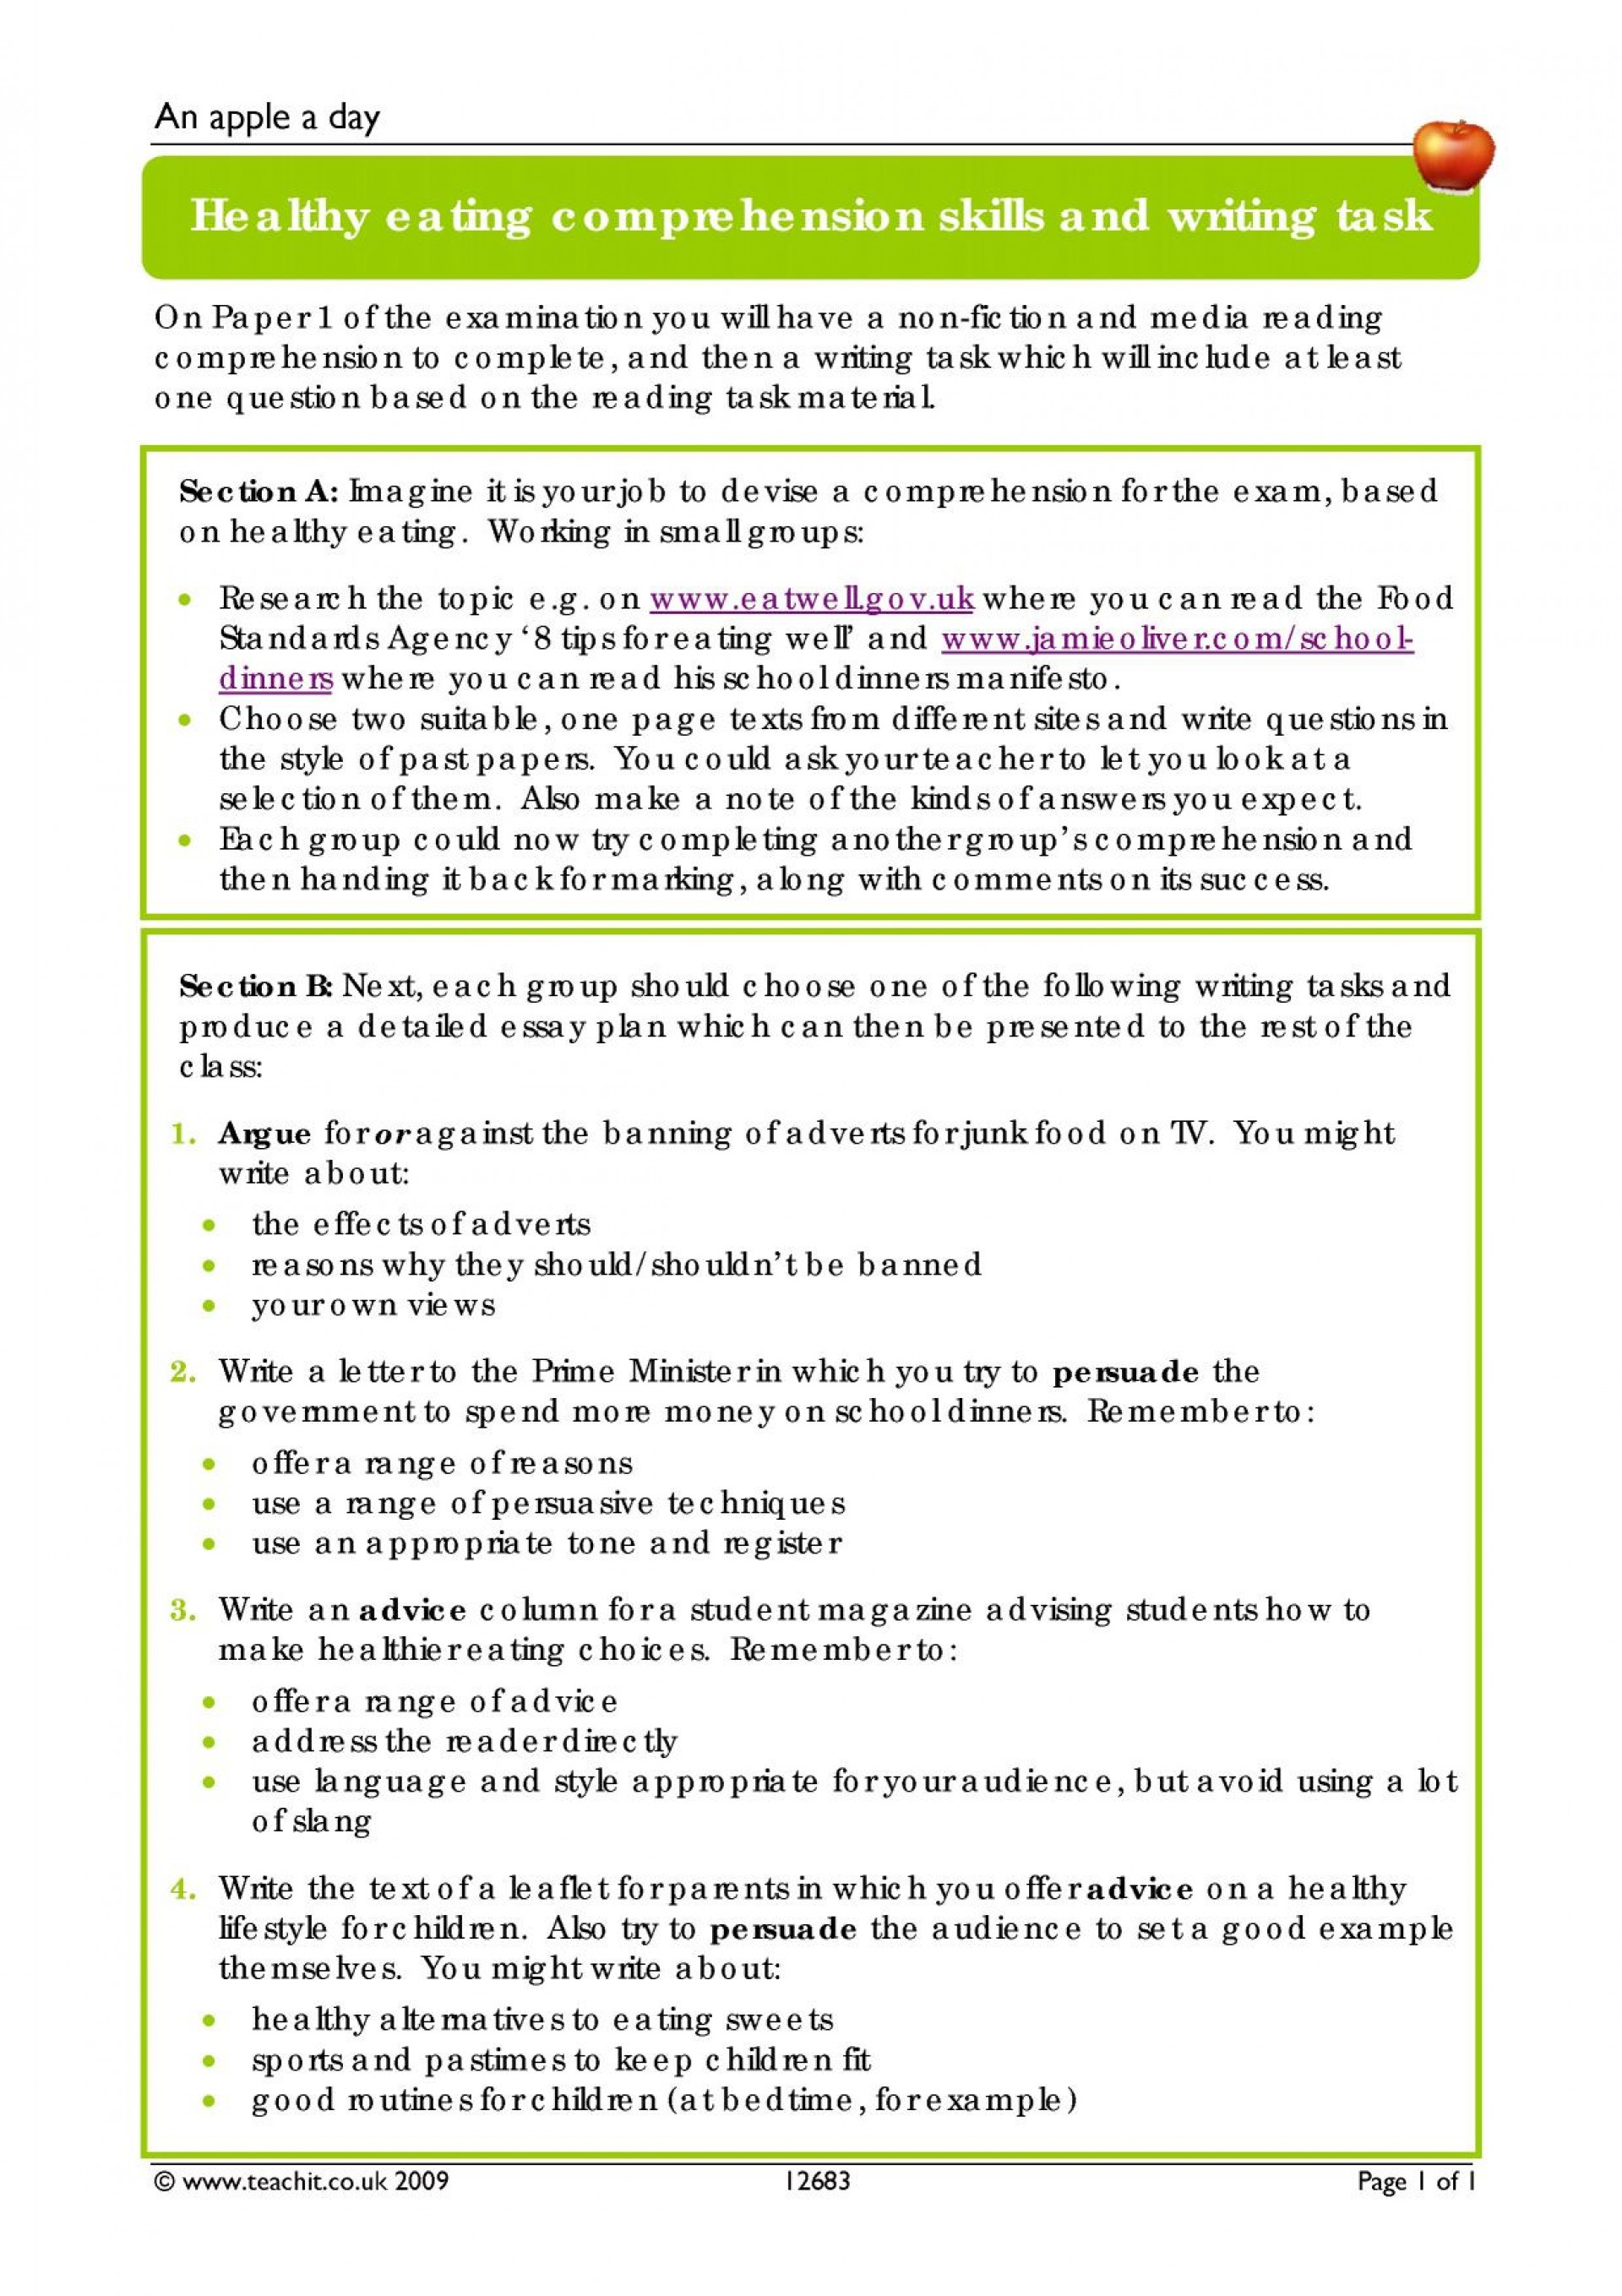 007 X16623 Php Pagespeed Ic Rgoow58ty Food Inc Essay Top Questions Topics Pdf 1920